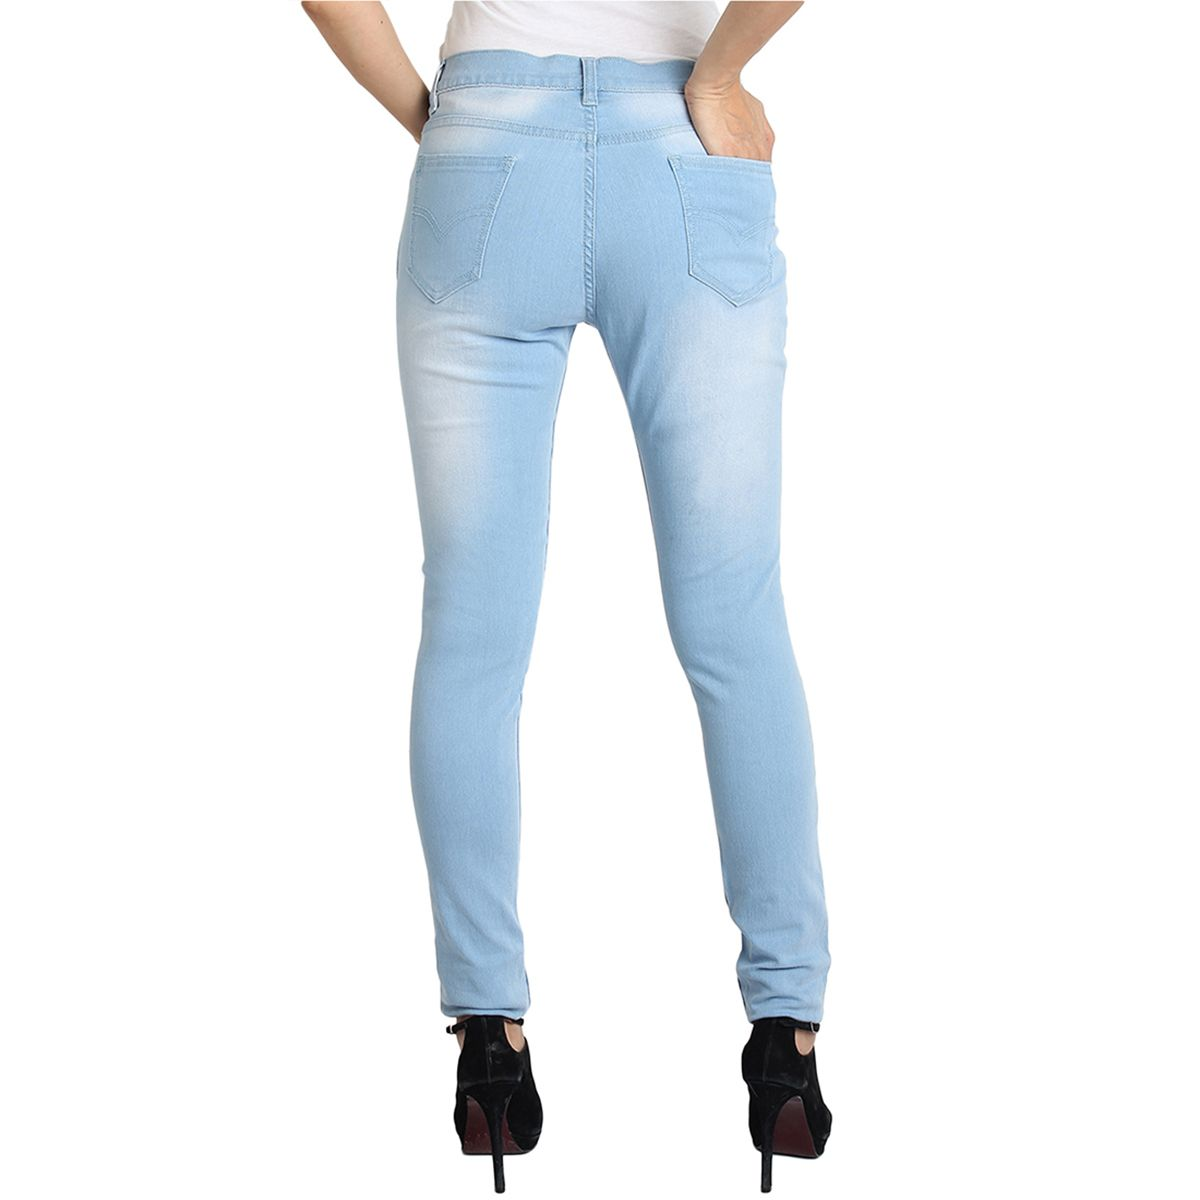 Fuego Fashion Wear Light Blue Jeans For Women With Assorted Boot Socks GRL-JNS-3HD3-BOOT-SOCKS-BLK